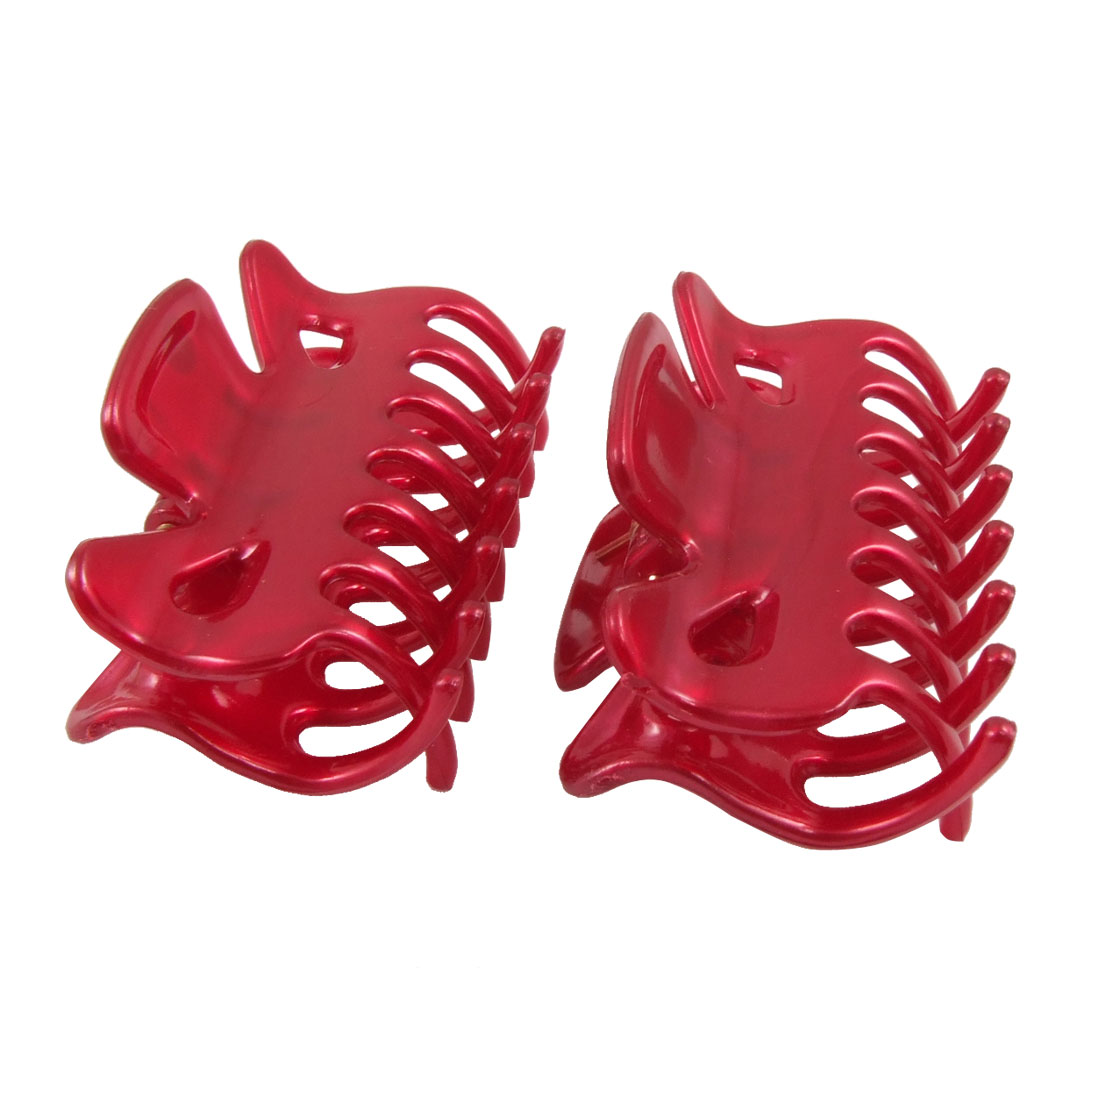 Woman Girls Burgundy Plastic Hairpin Hair Claw Clips 2 Pcs